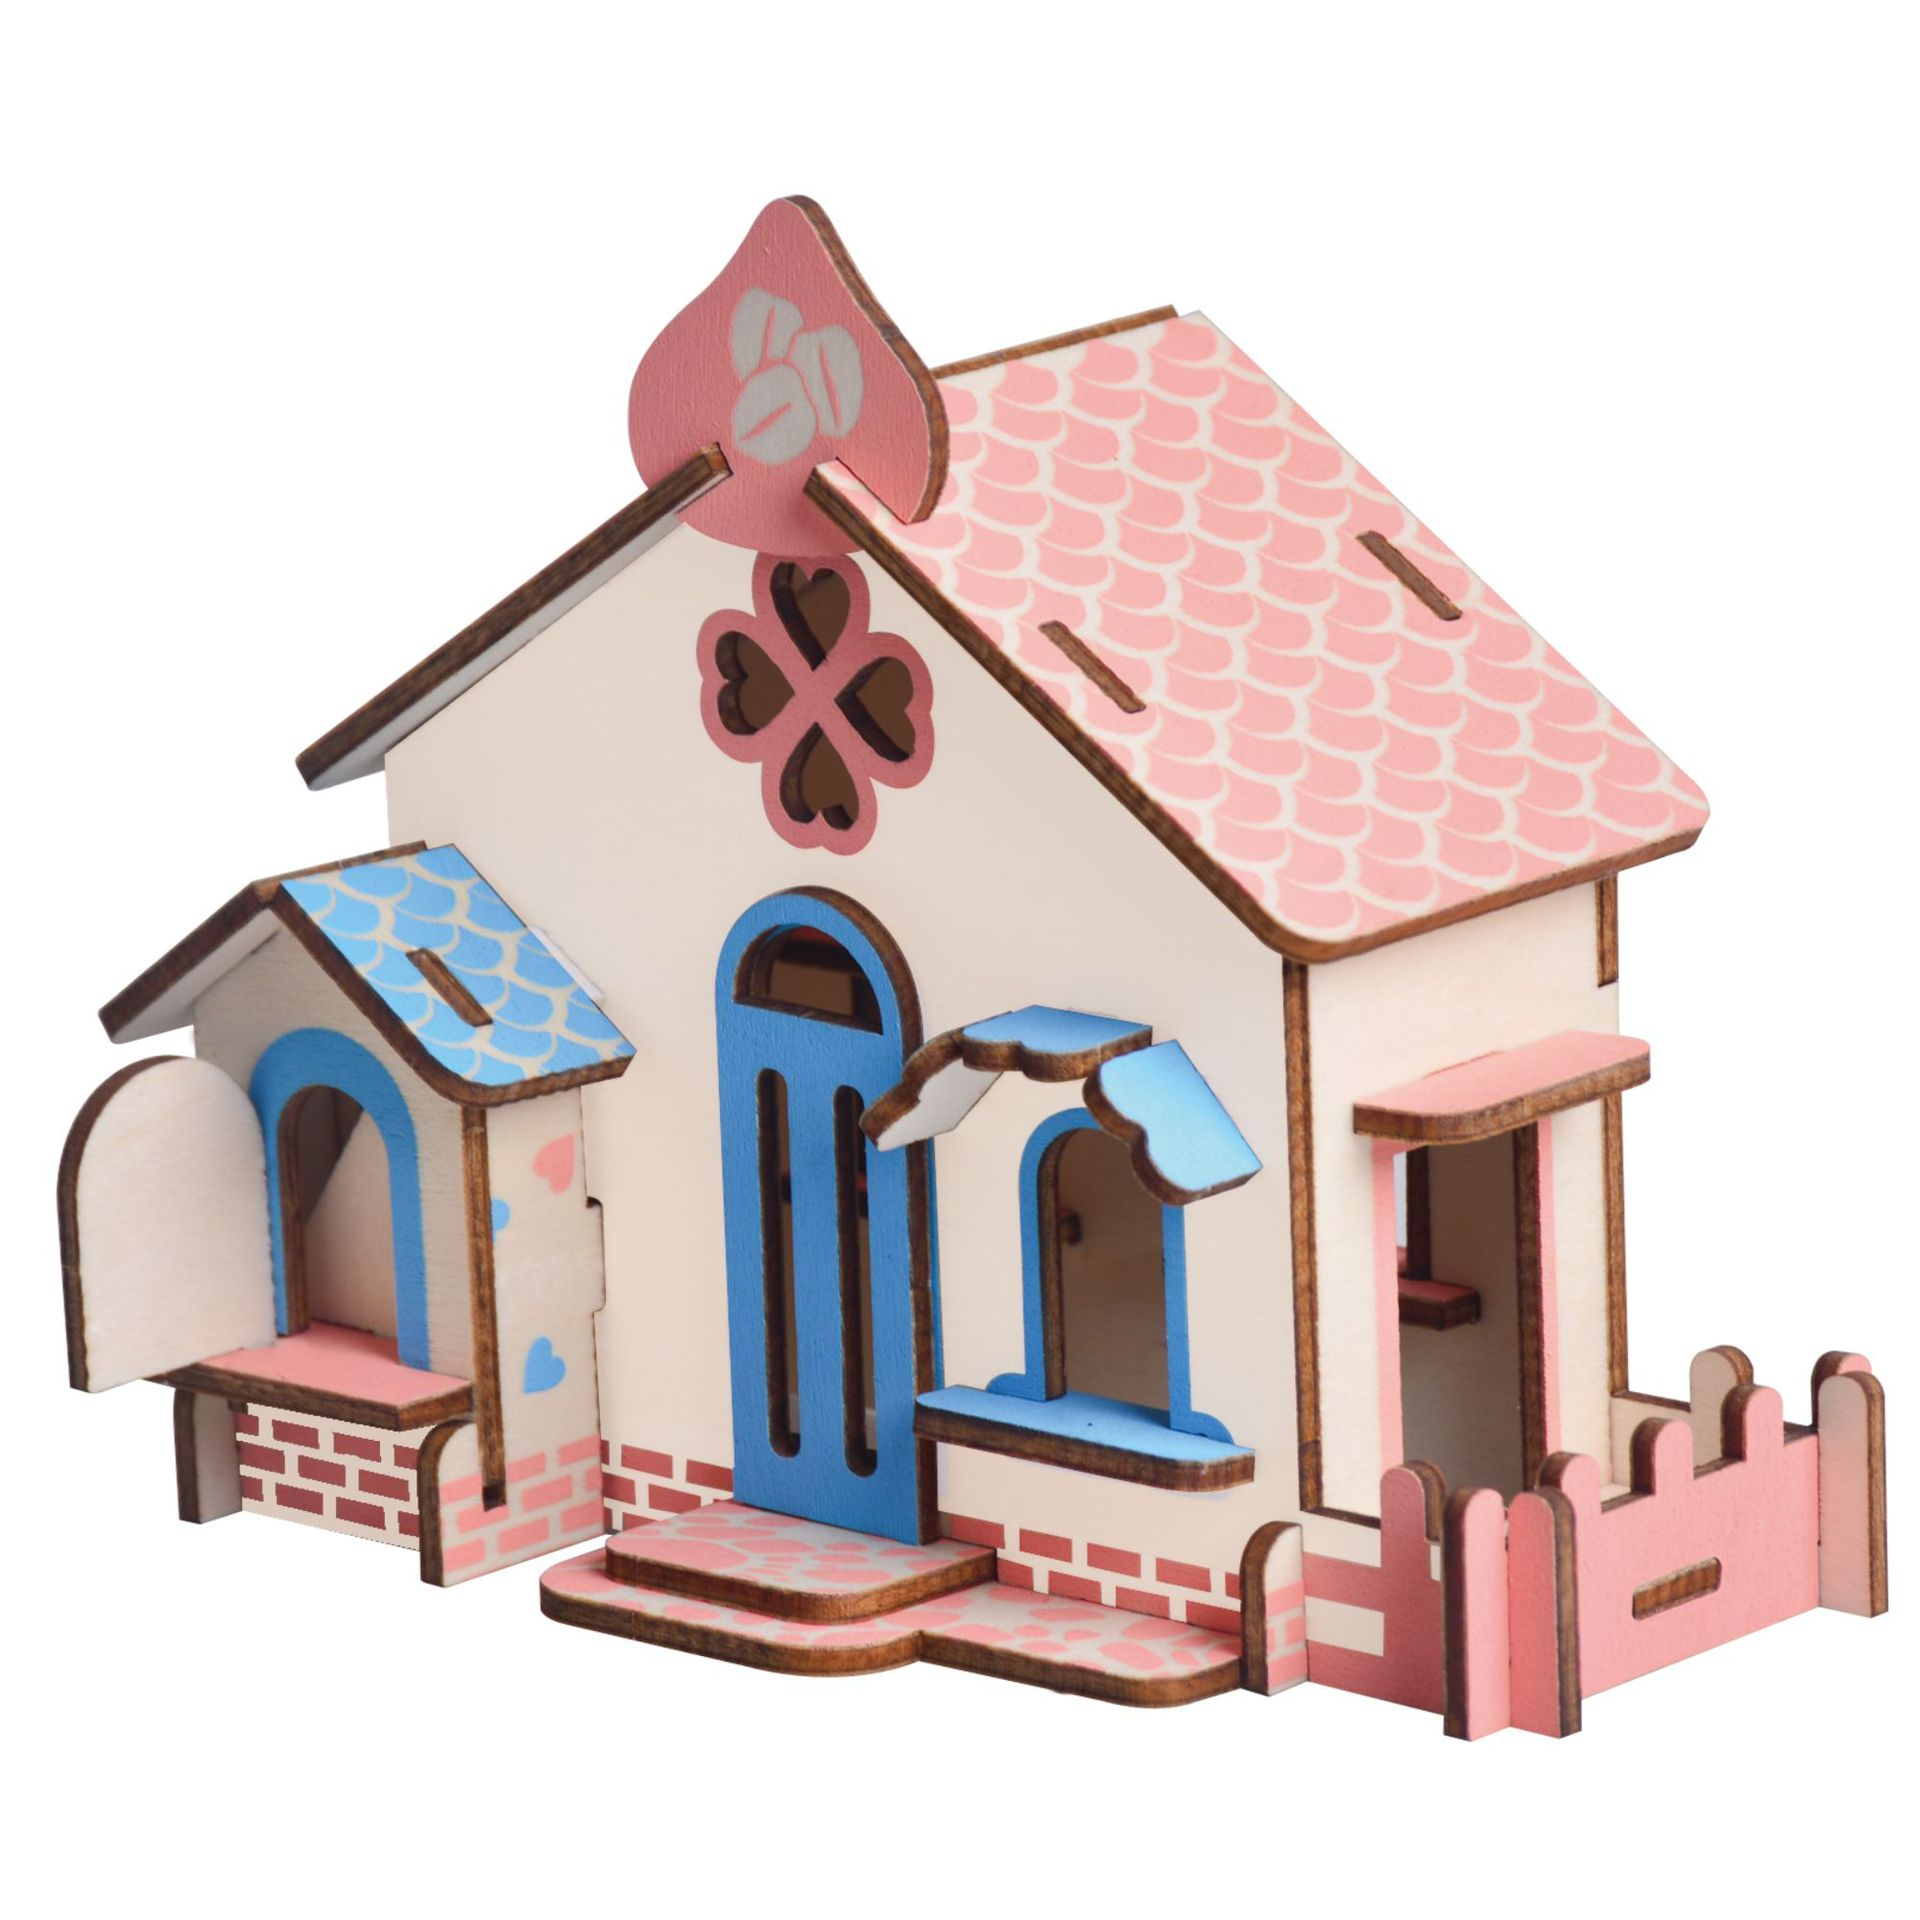 Laser Cutting 3D Wooden Puzzle Construction Chocolate House DIY Manual Assembly  Kids Educational Wooden Toys For Children